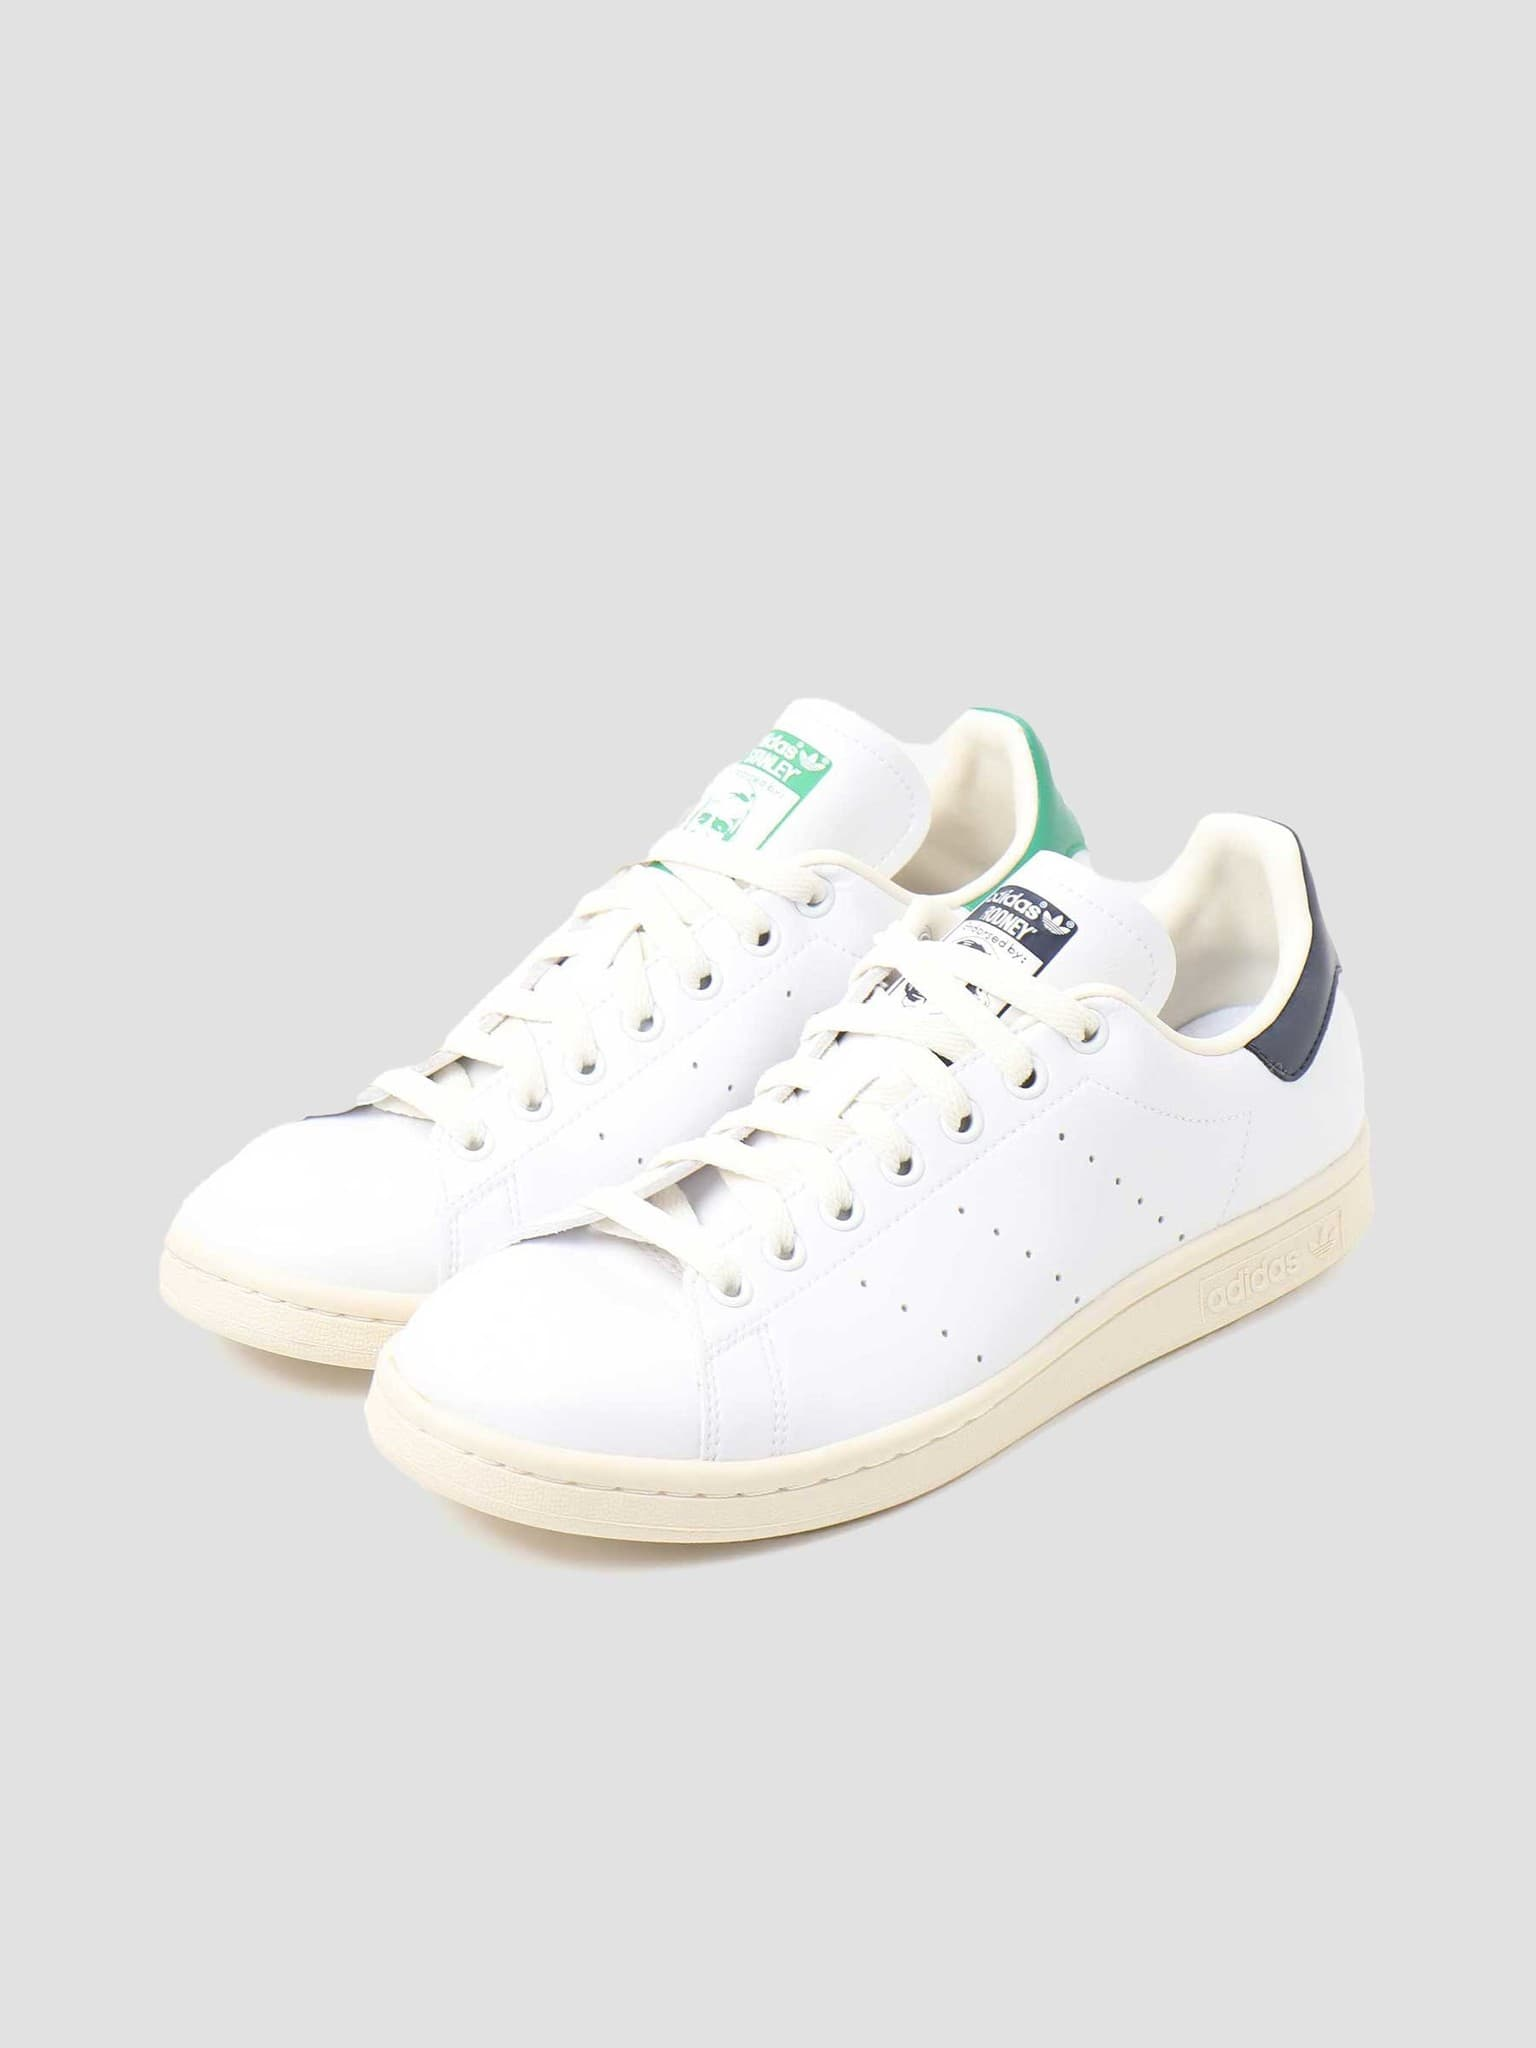 Stan Smith Cwhite Footwear White Conavy FY1794